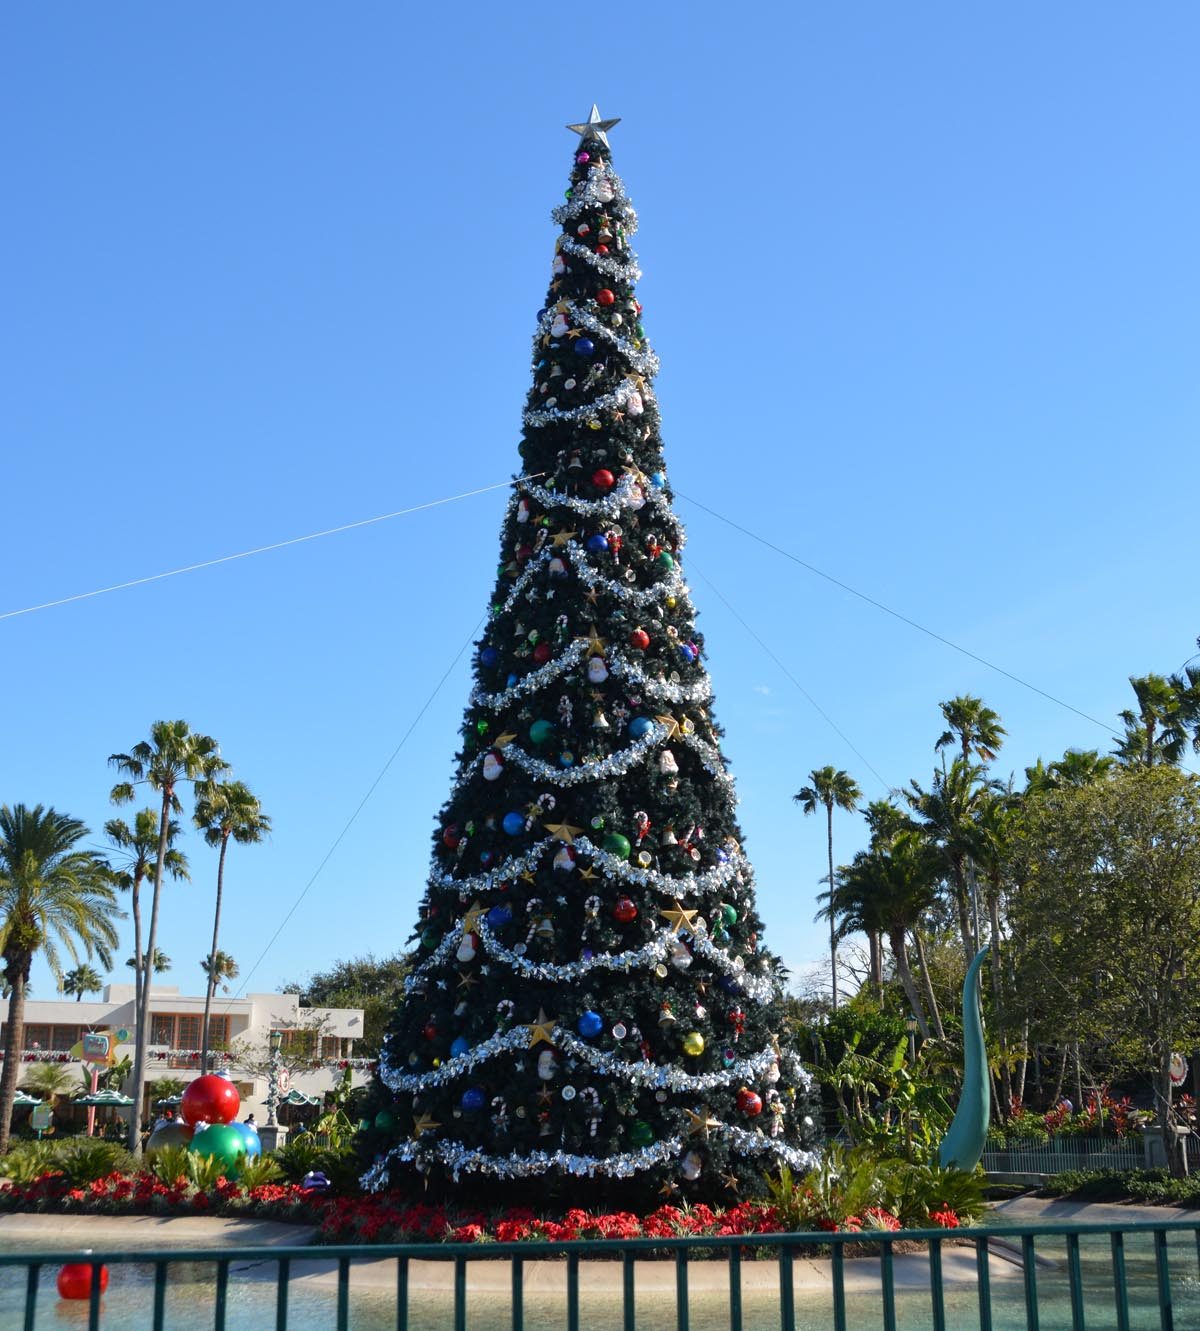 Today S Disney Photos Christmas Decorations Down Now A